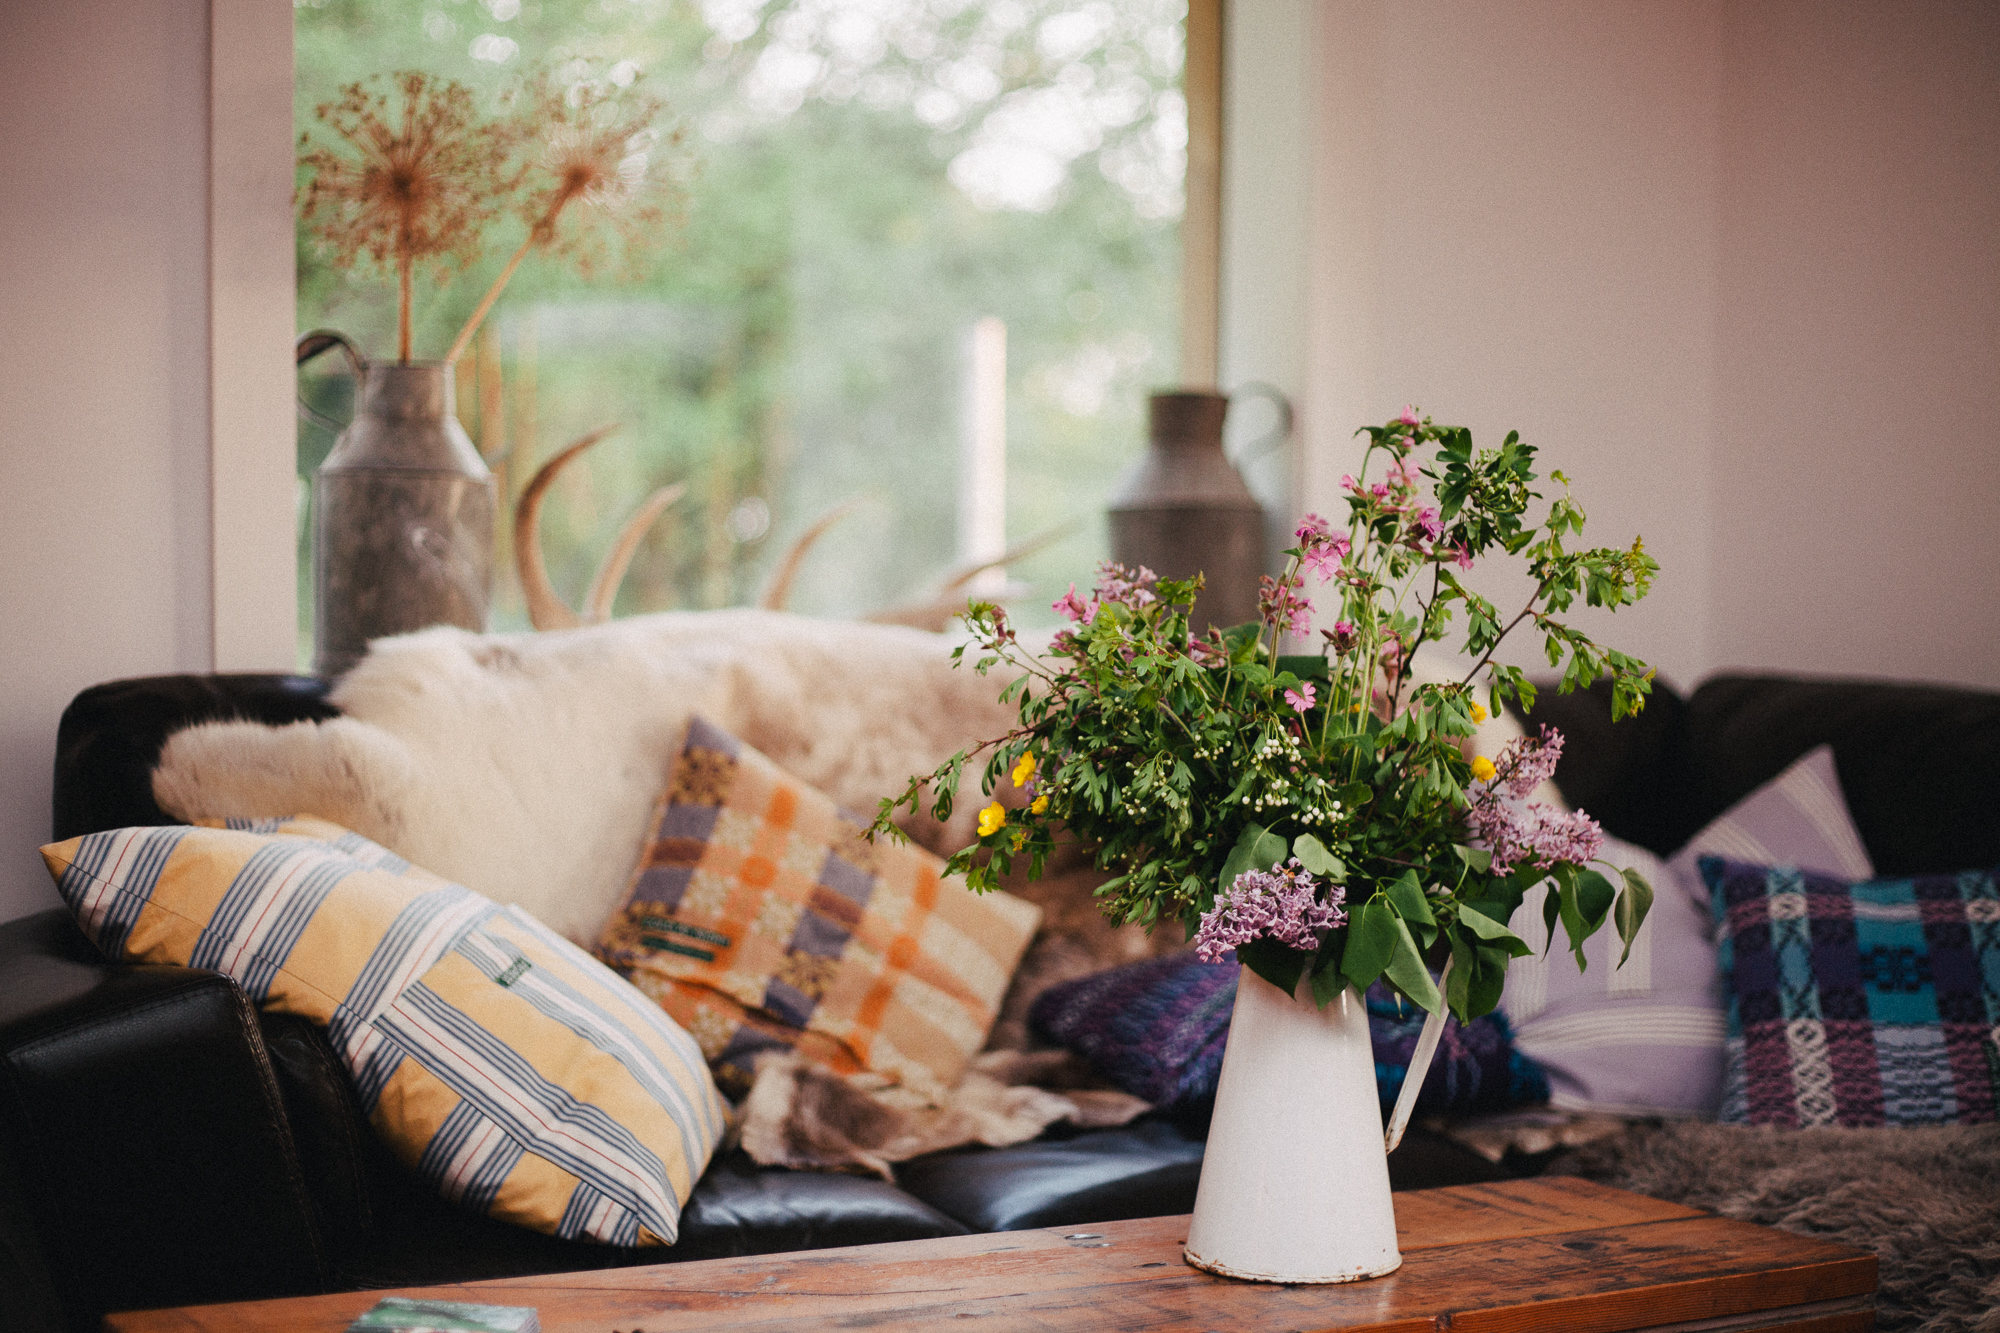 Wildflowers in enamel jug with sofa in background. By Leonie Wise